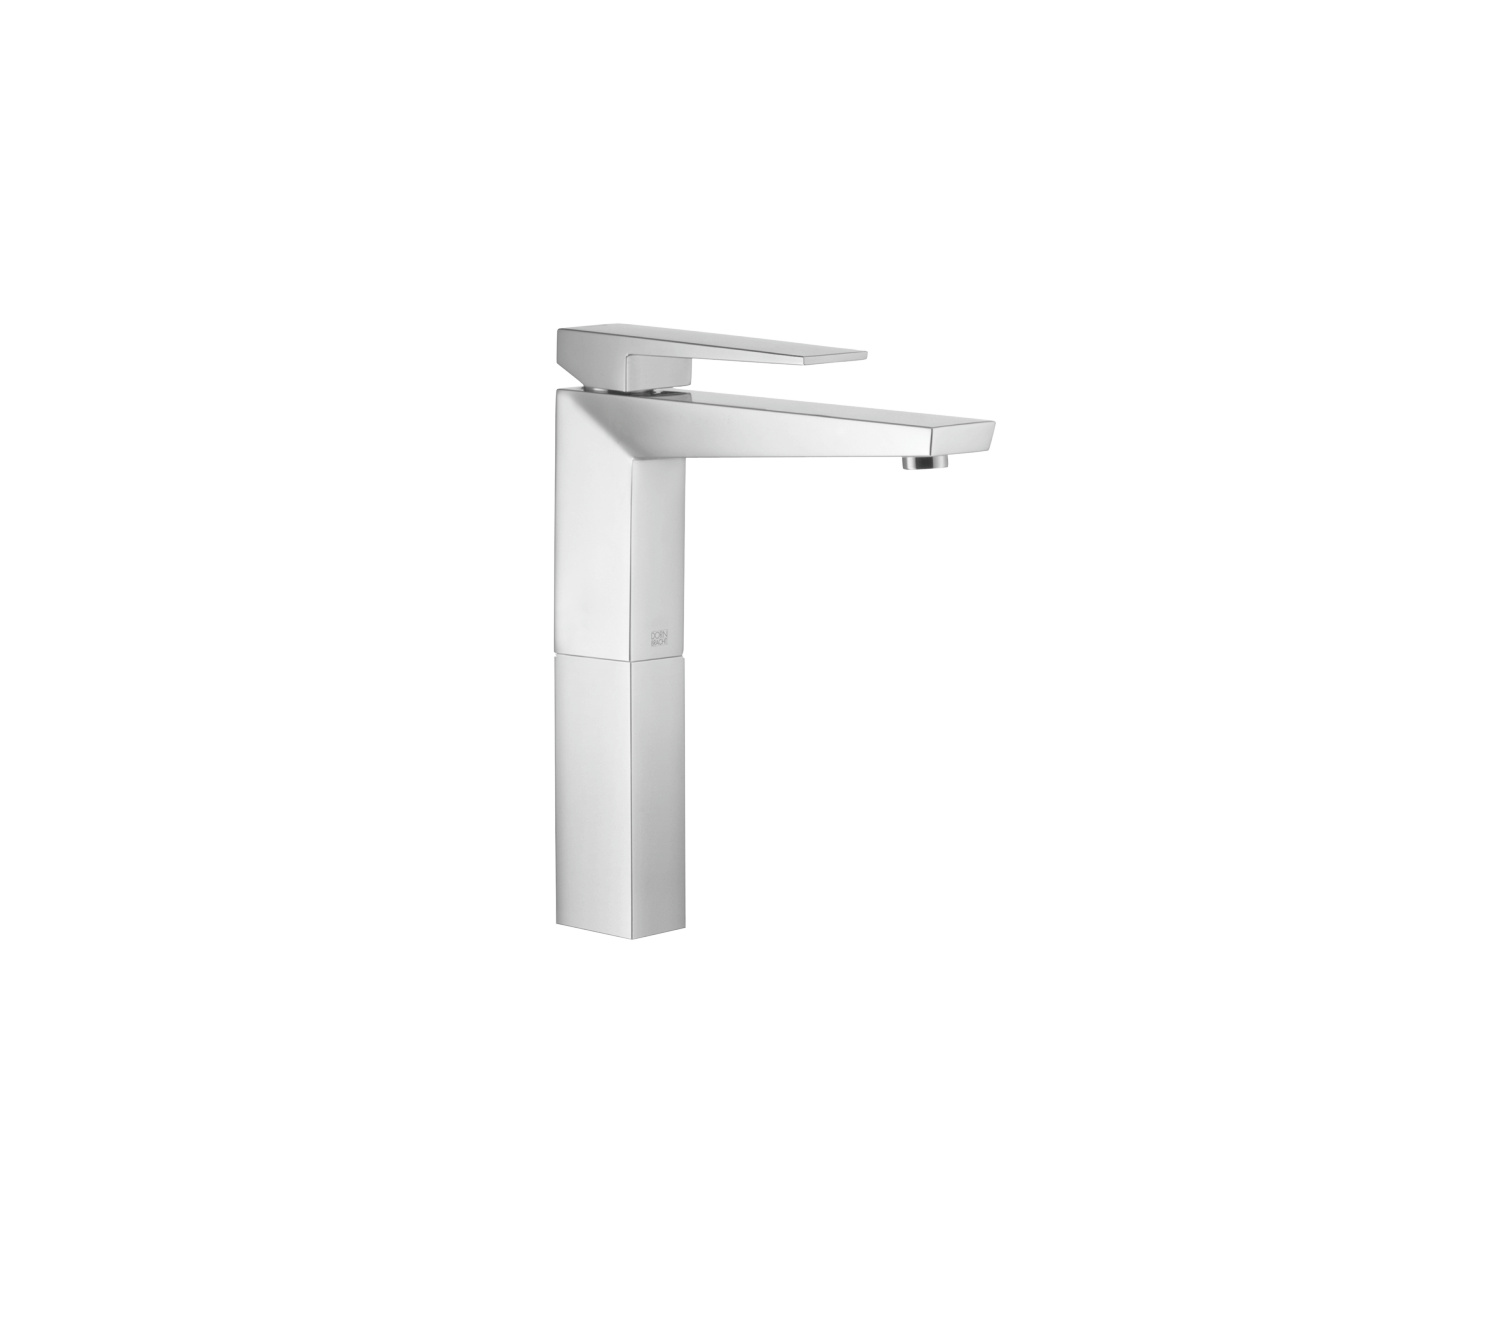 Single-lever basin mixer with raised base without pop-up waste - Champagne